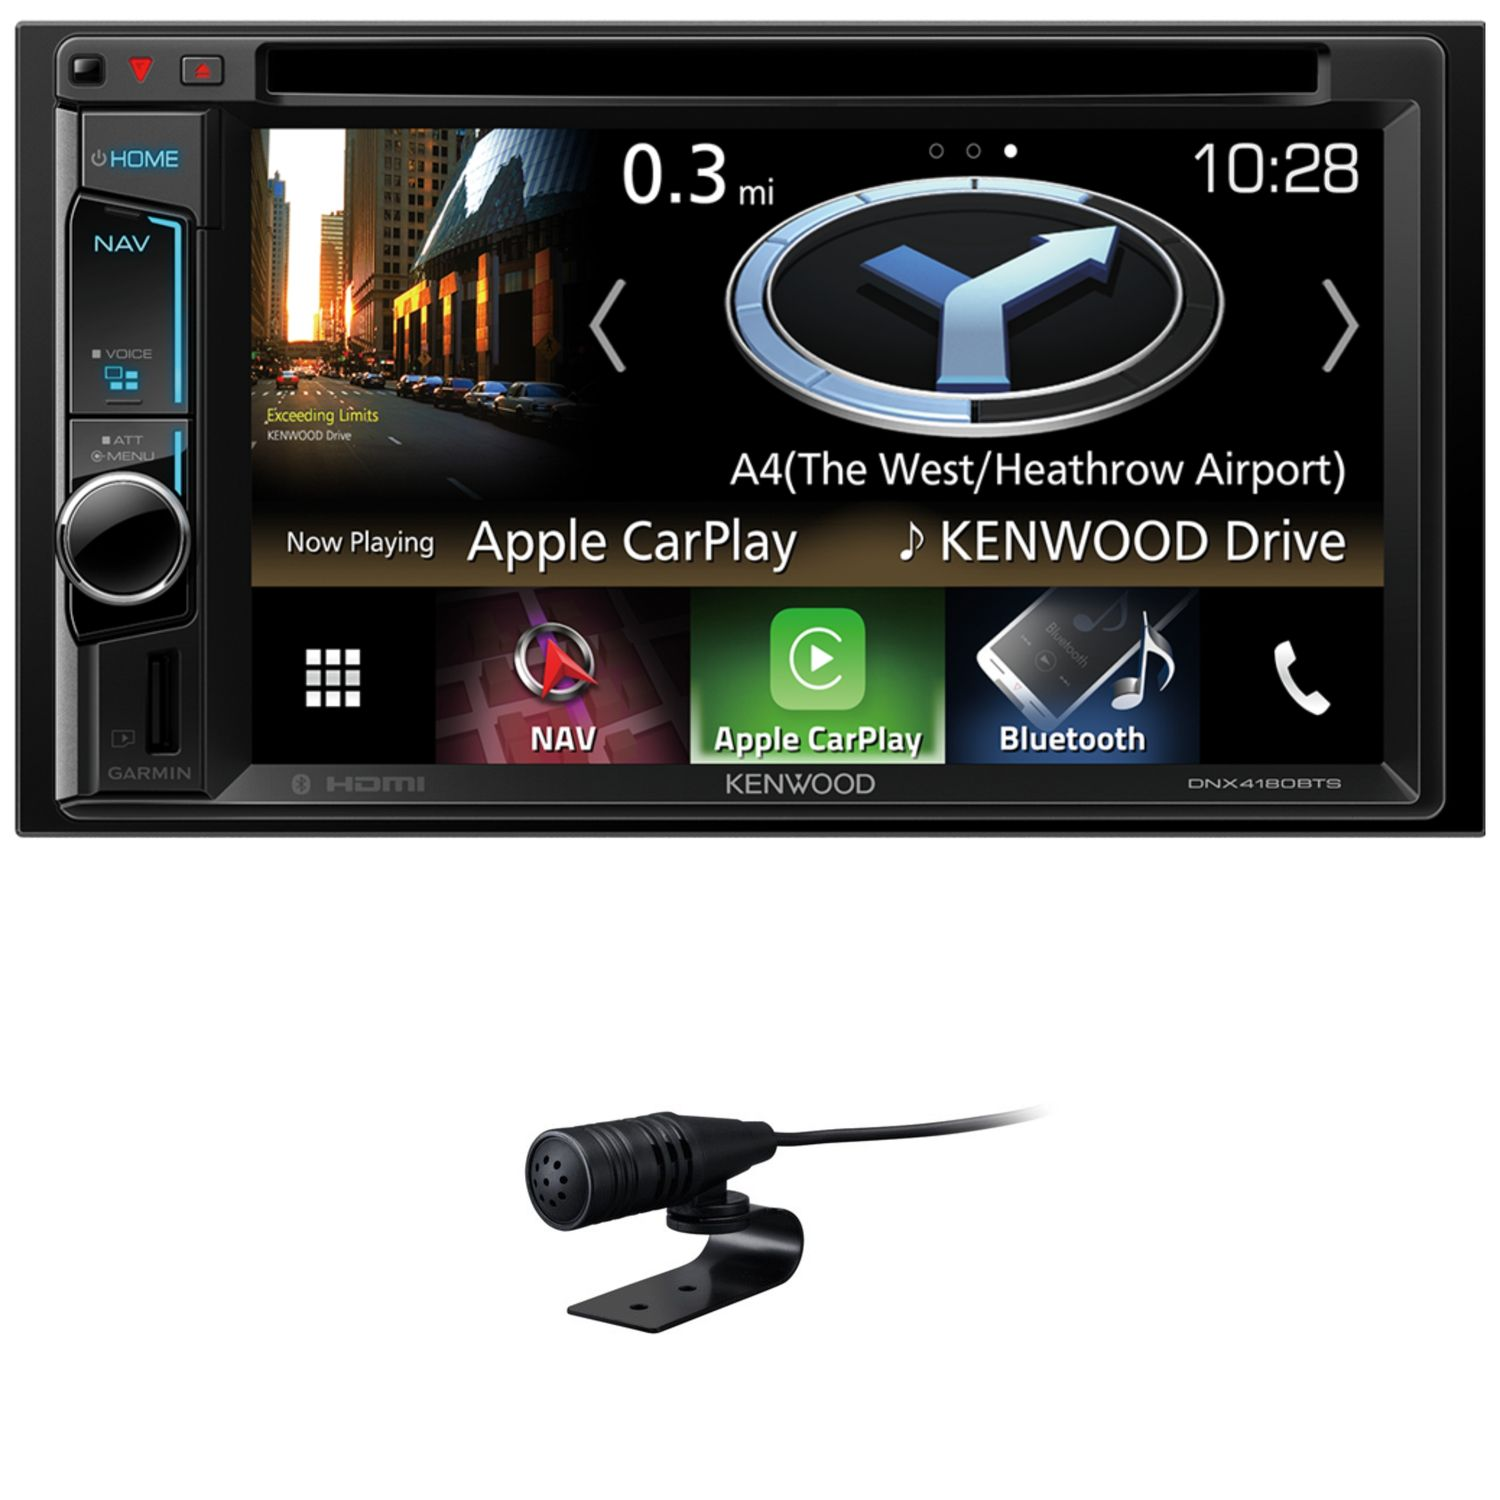 kenwood dnx 4180bts 2 din naviceiver apple carplay. Black Bedroom Furniture Sets. Home Design Ideas